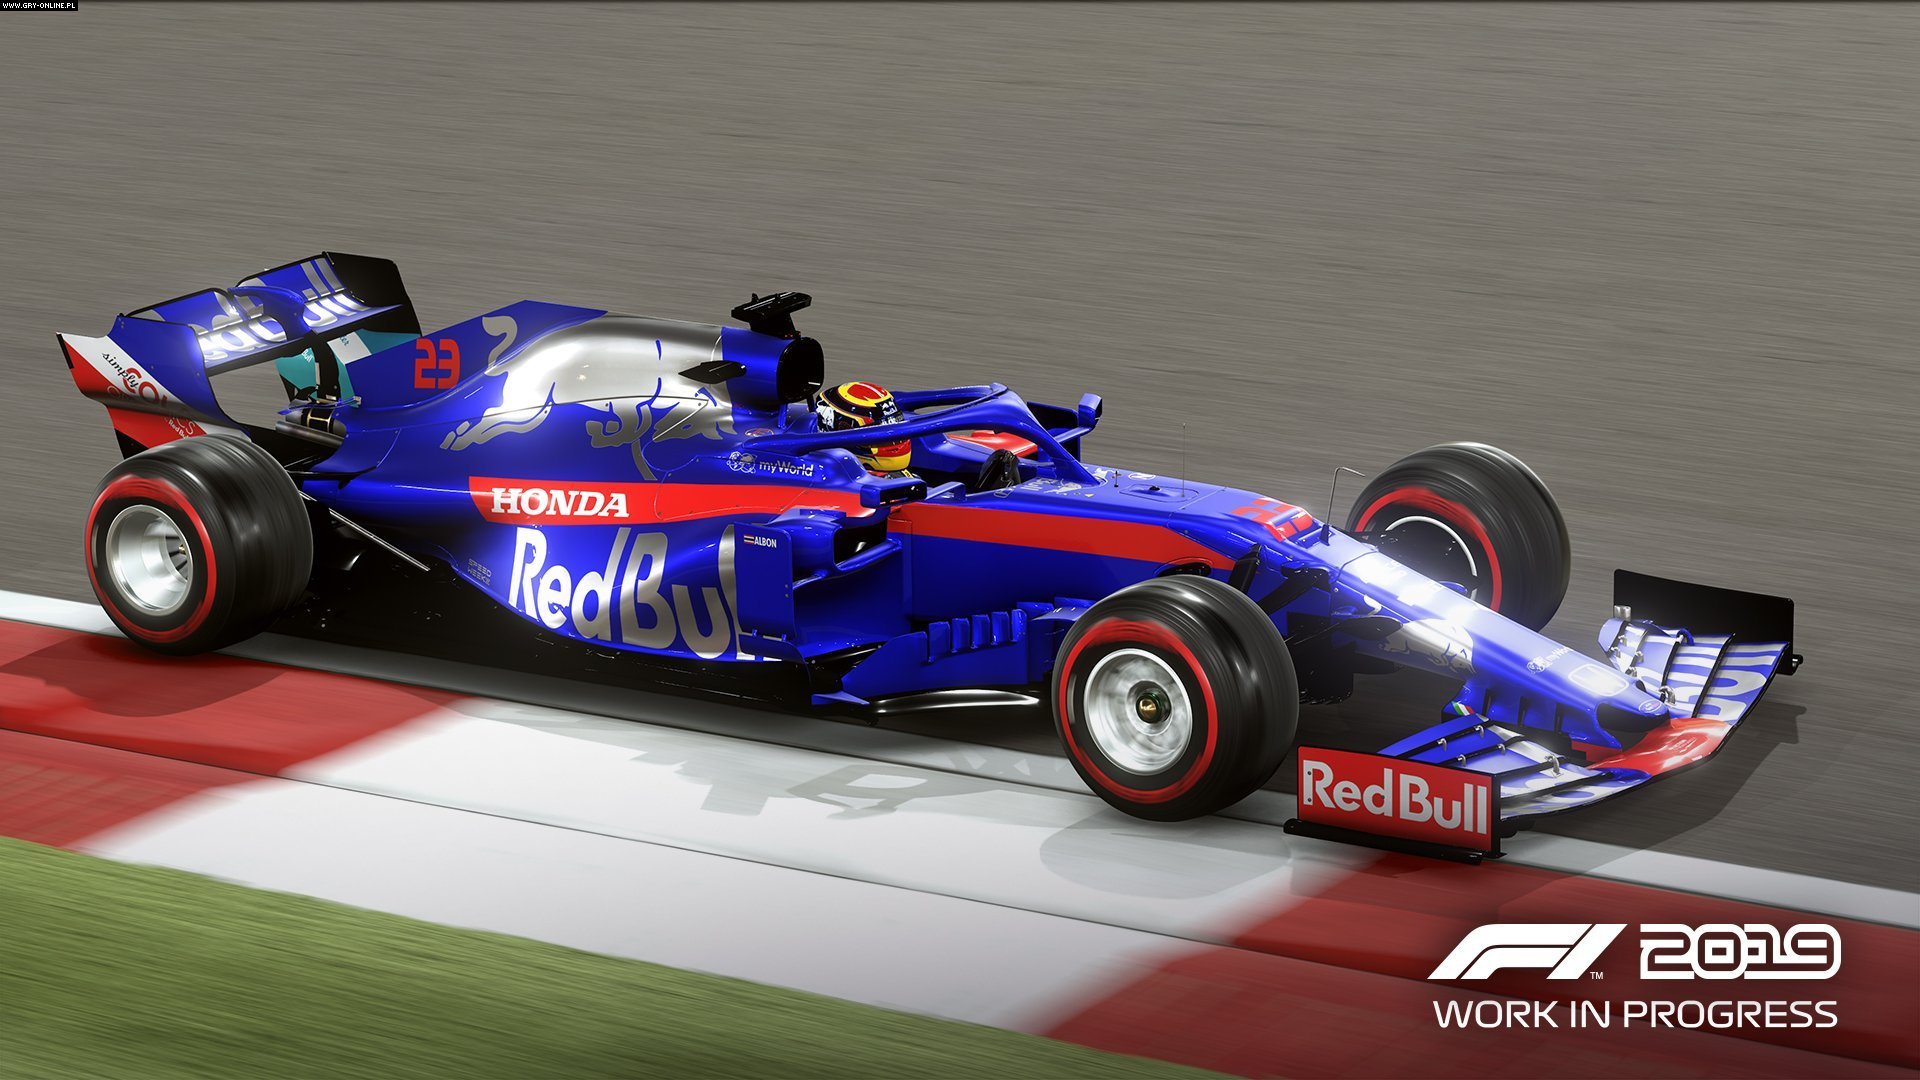 F1 2019 PC, PS4, XONE Games Image 86/104, Codemasters Software